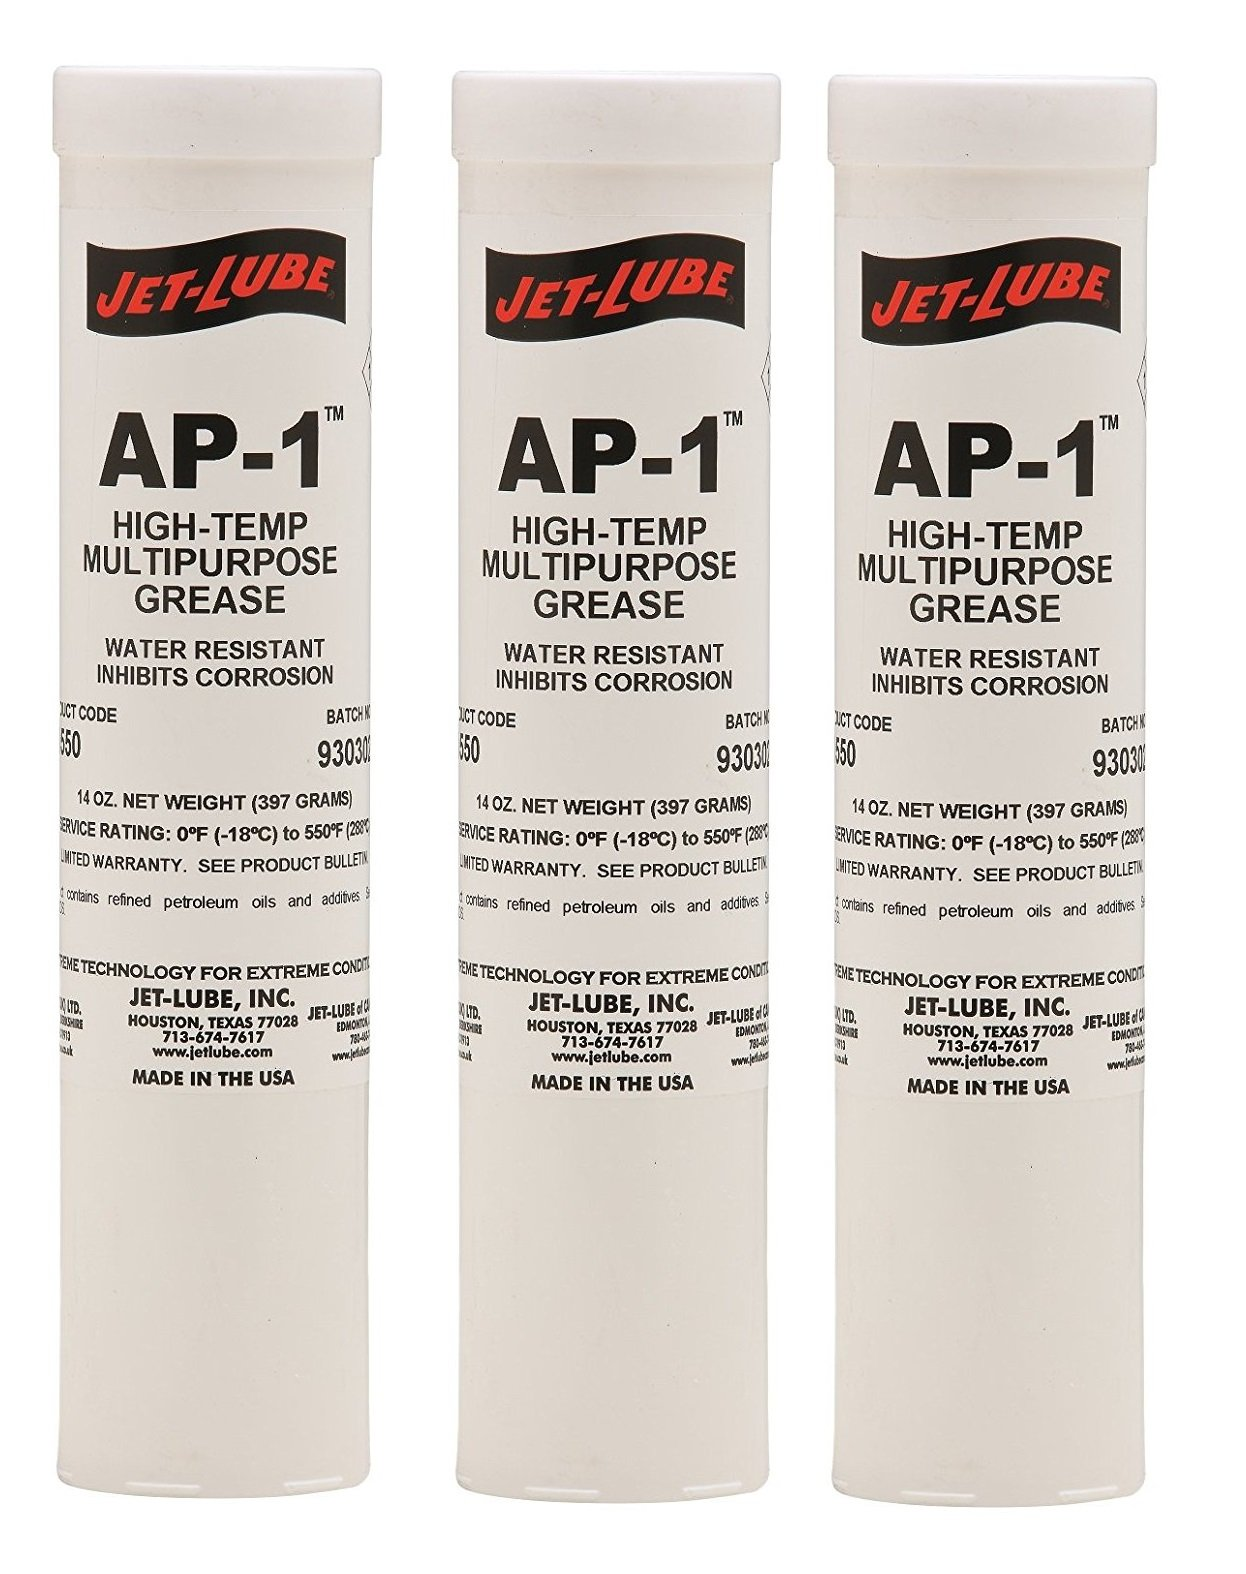 Jet-Lube 31550 AP-1 Non-Melt High Temperature Grease 0 to 550 degrees F 14 oz Cartridge, Amber by Jet-Lube_